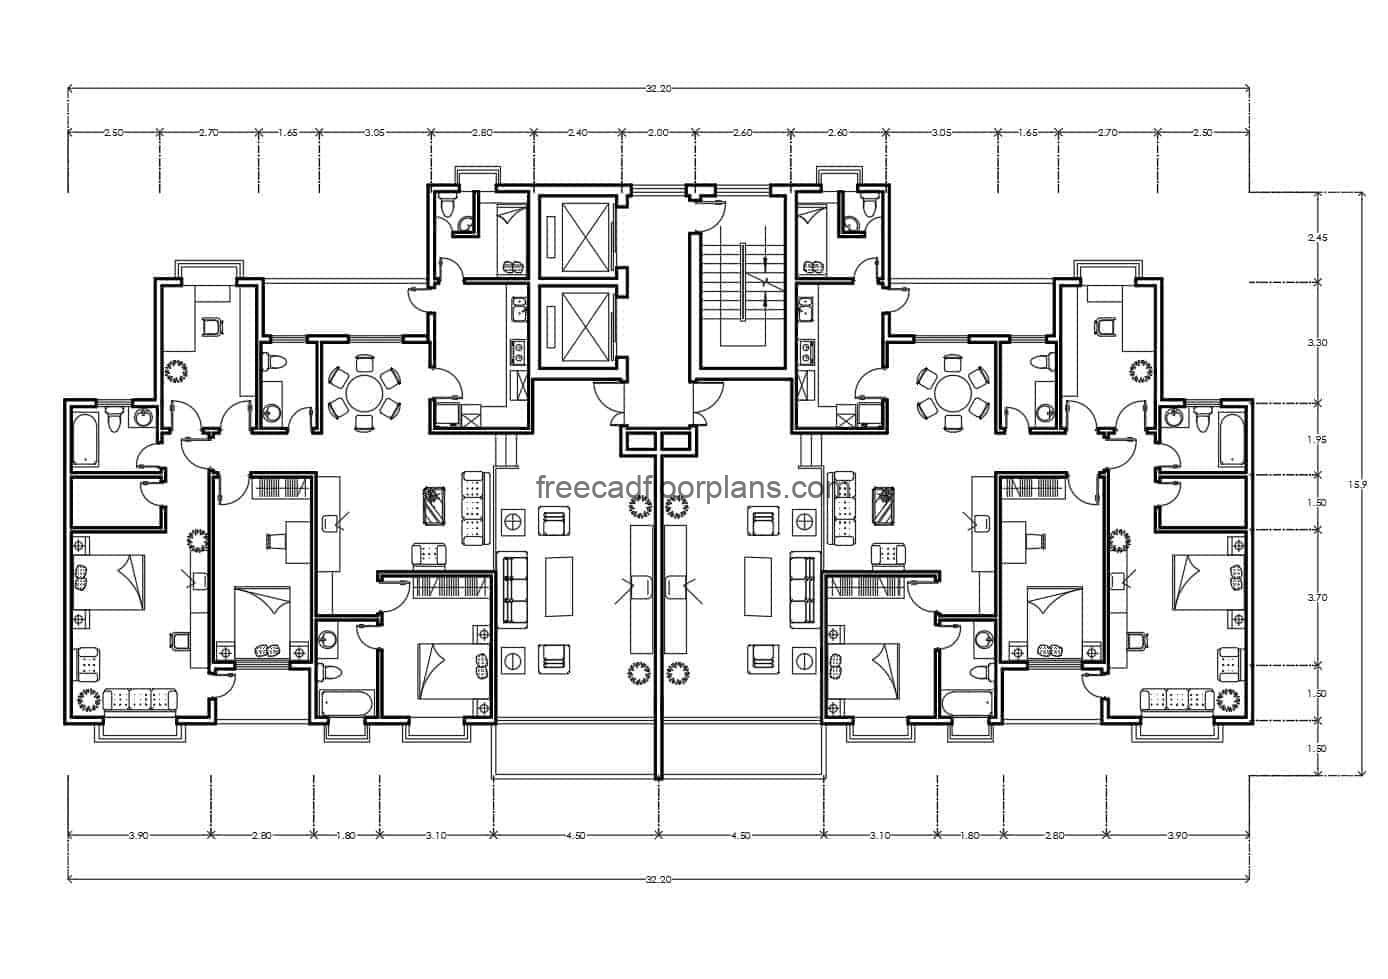 CAD DWG Archive of a symmetrical residential building, completely furnished with DWG blocks, architectural distribution plant and dimensioned plant